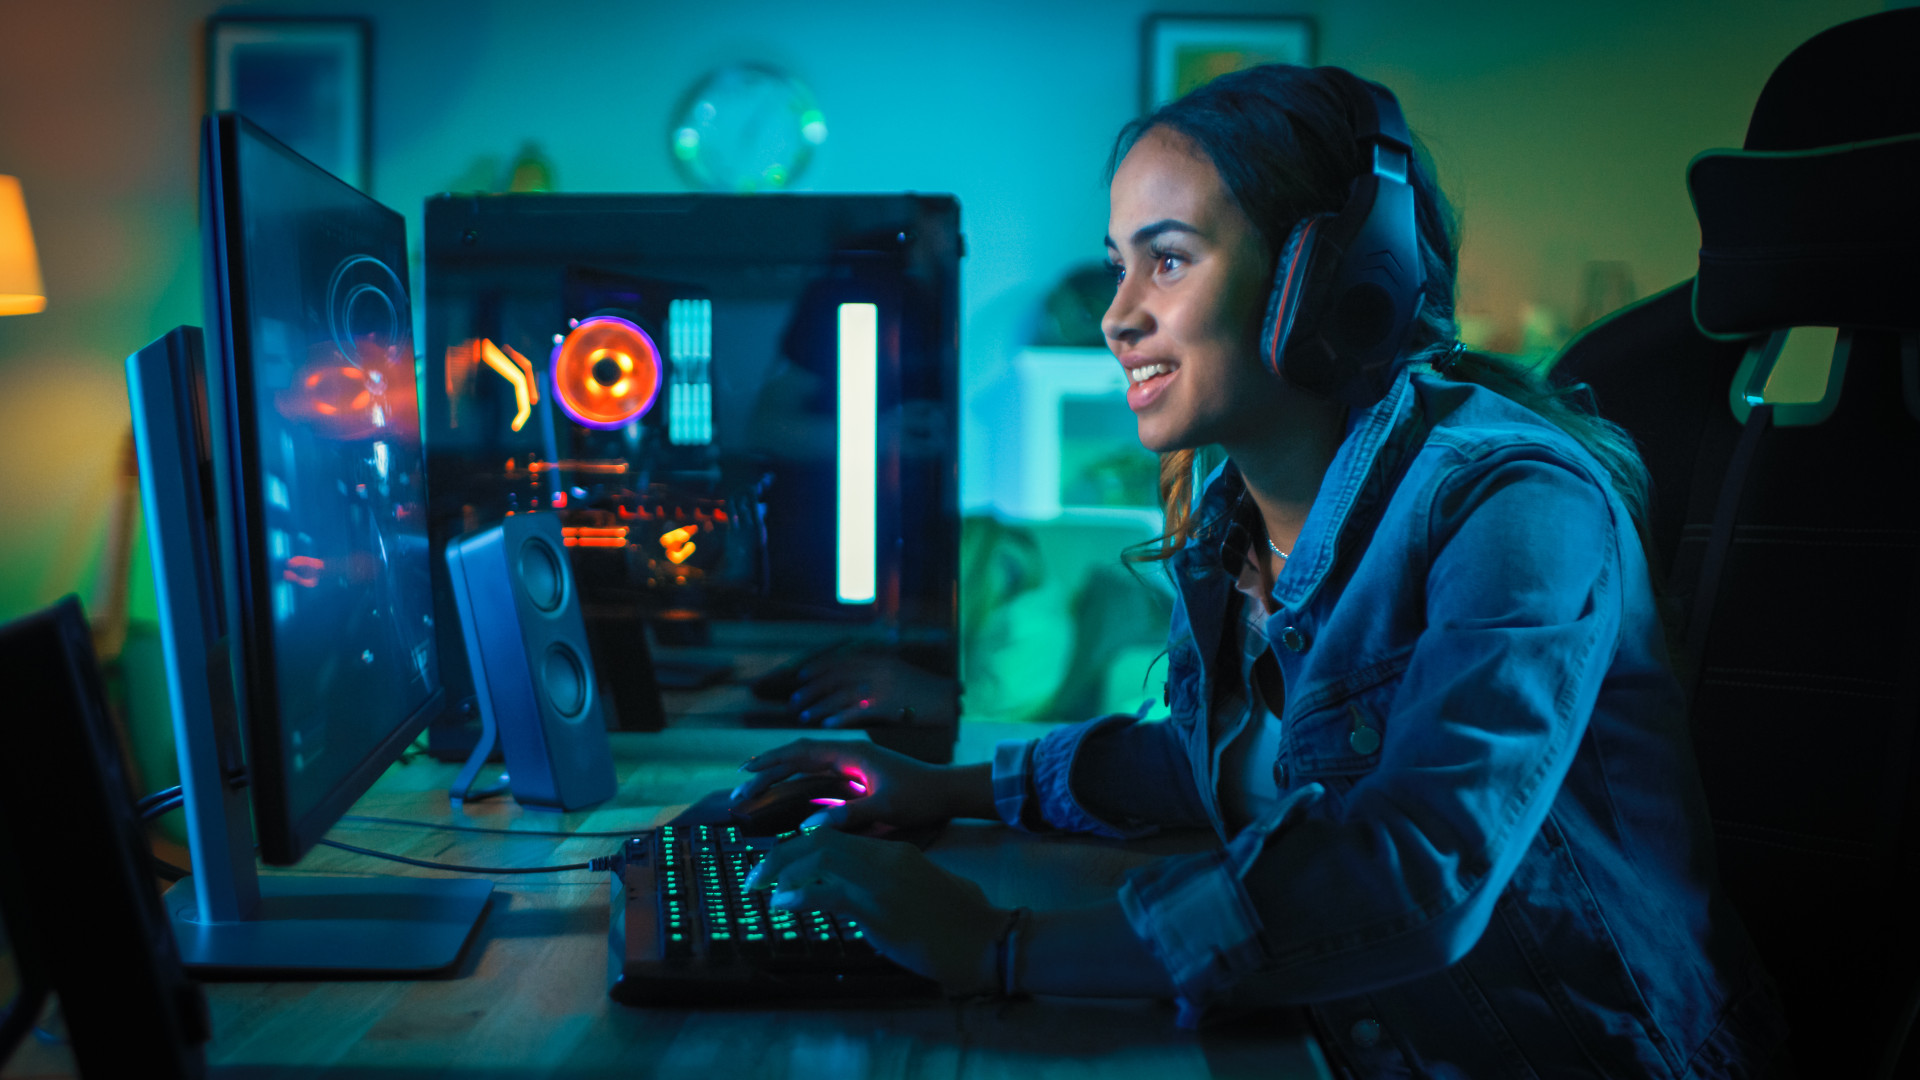 A woman playing games on a PC.